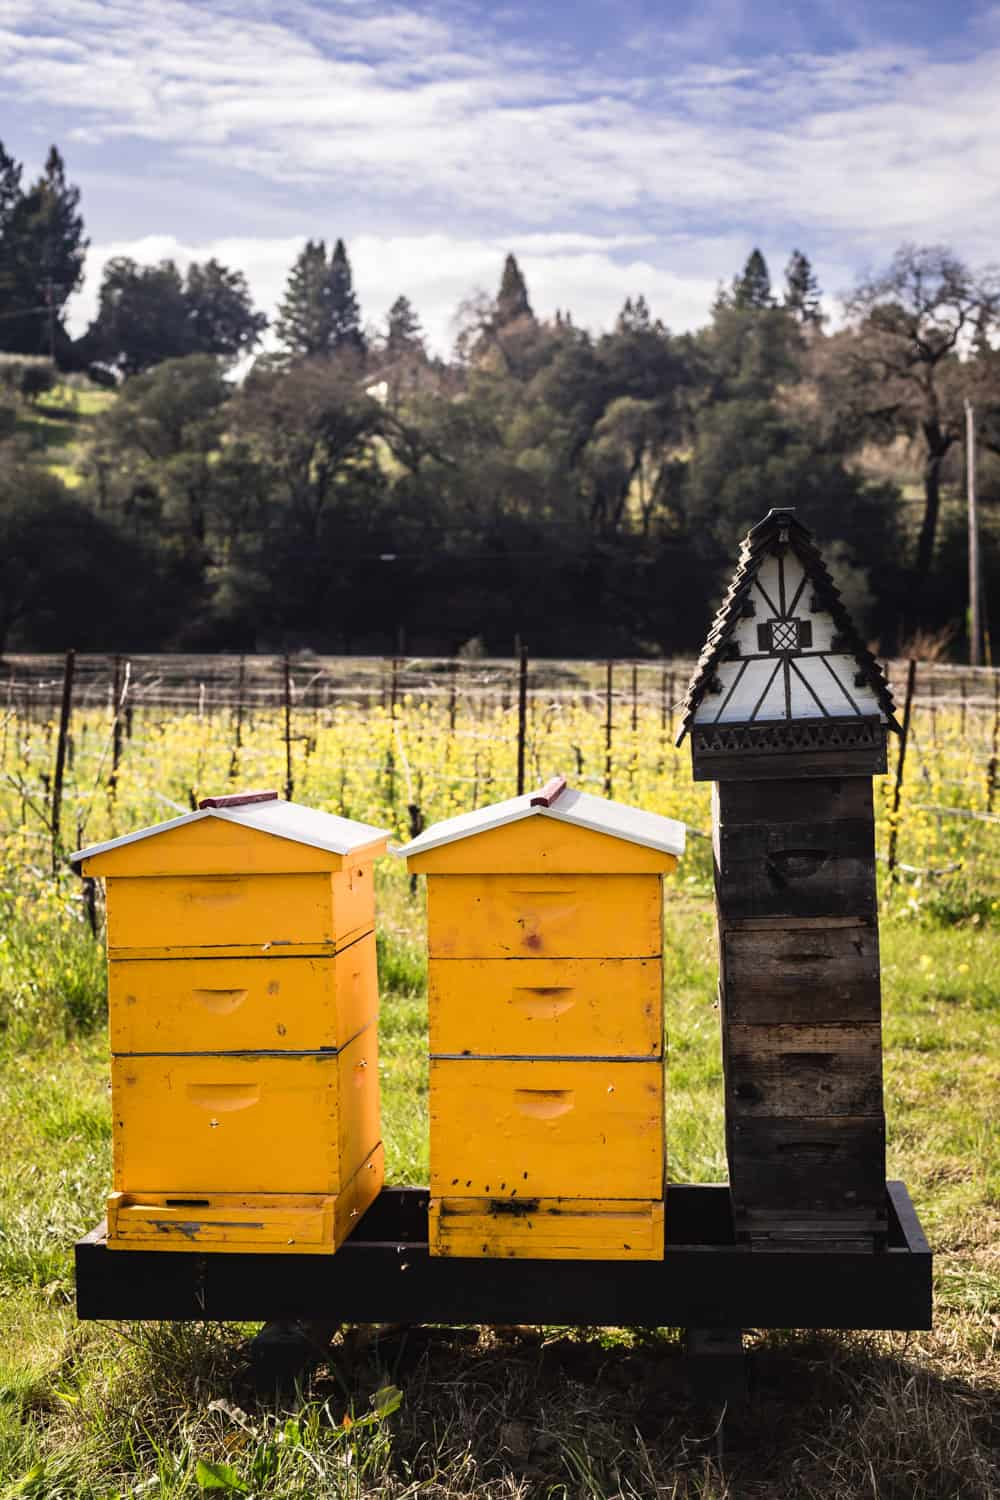 Bees being kept at Davero's biodynamic farm and winery.